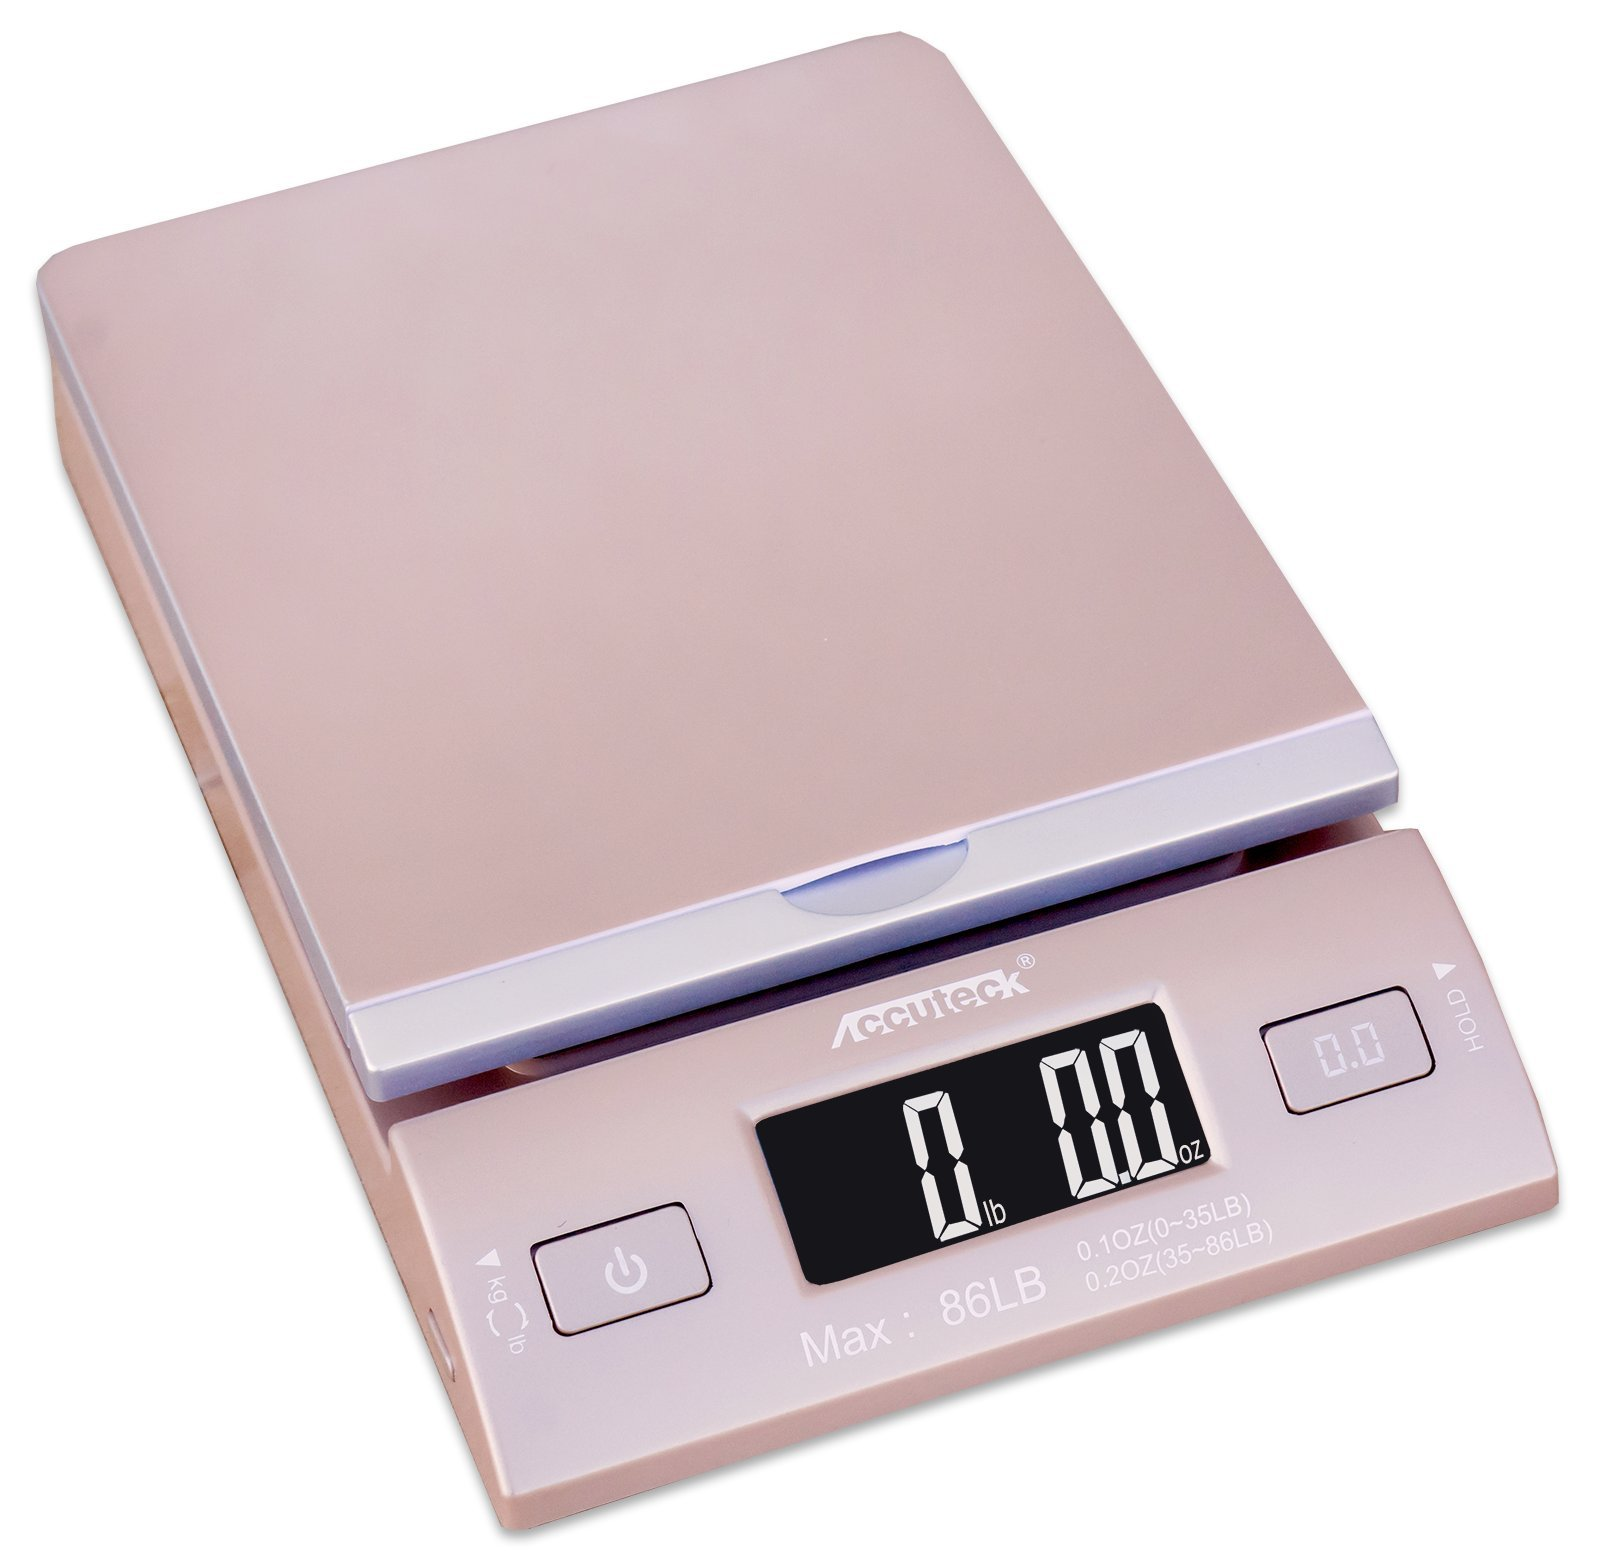 Accuteck DreamGold 86 Lbs Digital Postal Scale Shipping Scale Postage with USB&AC Adapter, Limited Edition by ACCUTECK